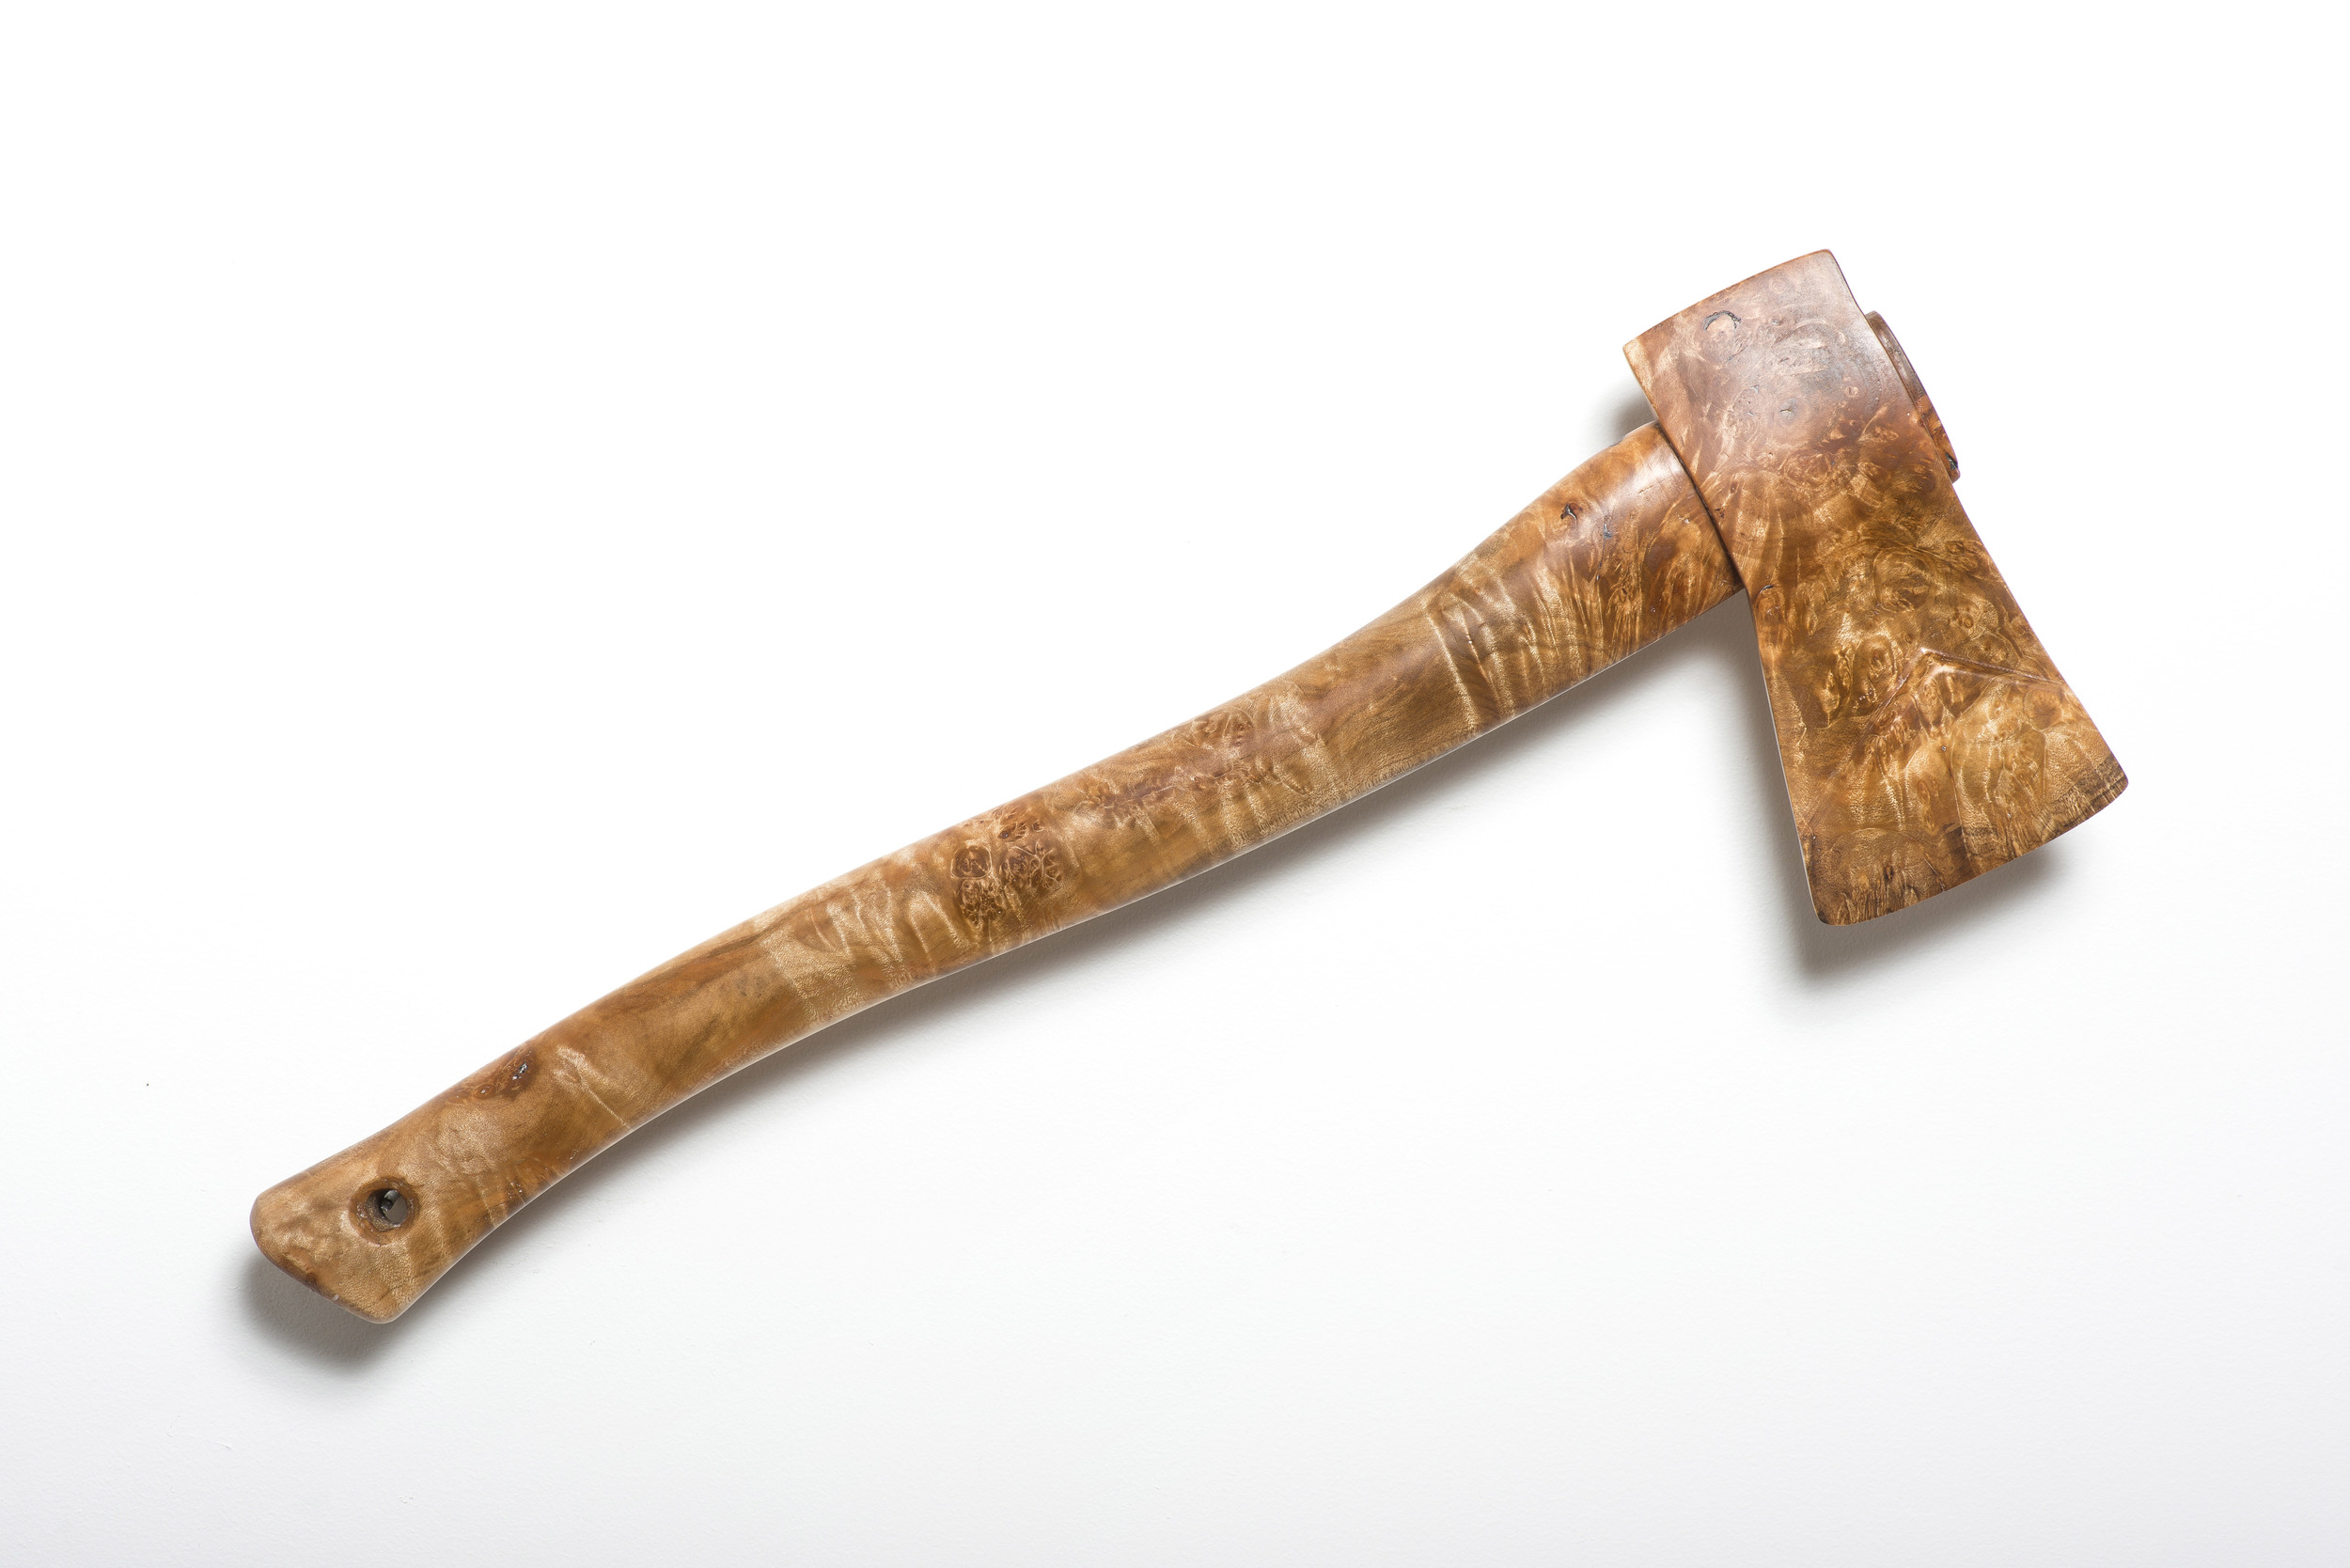 Axe,maple3:3.jpg